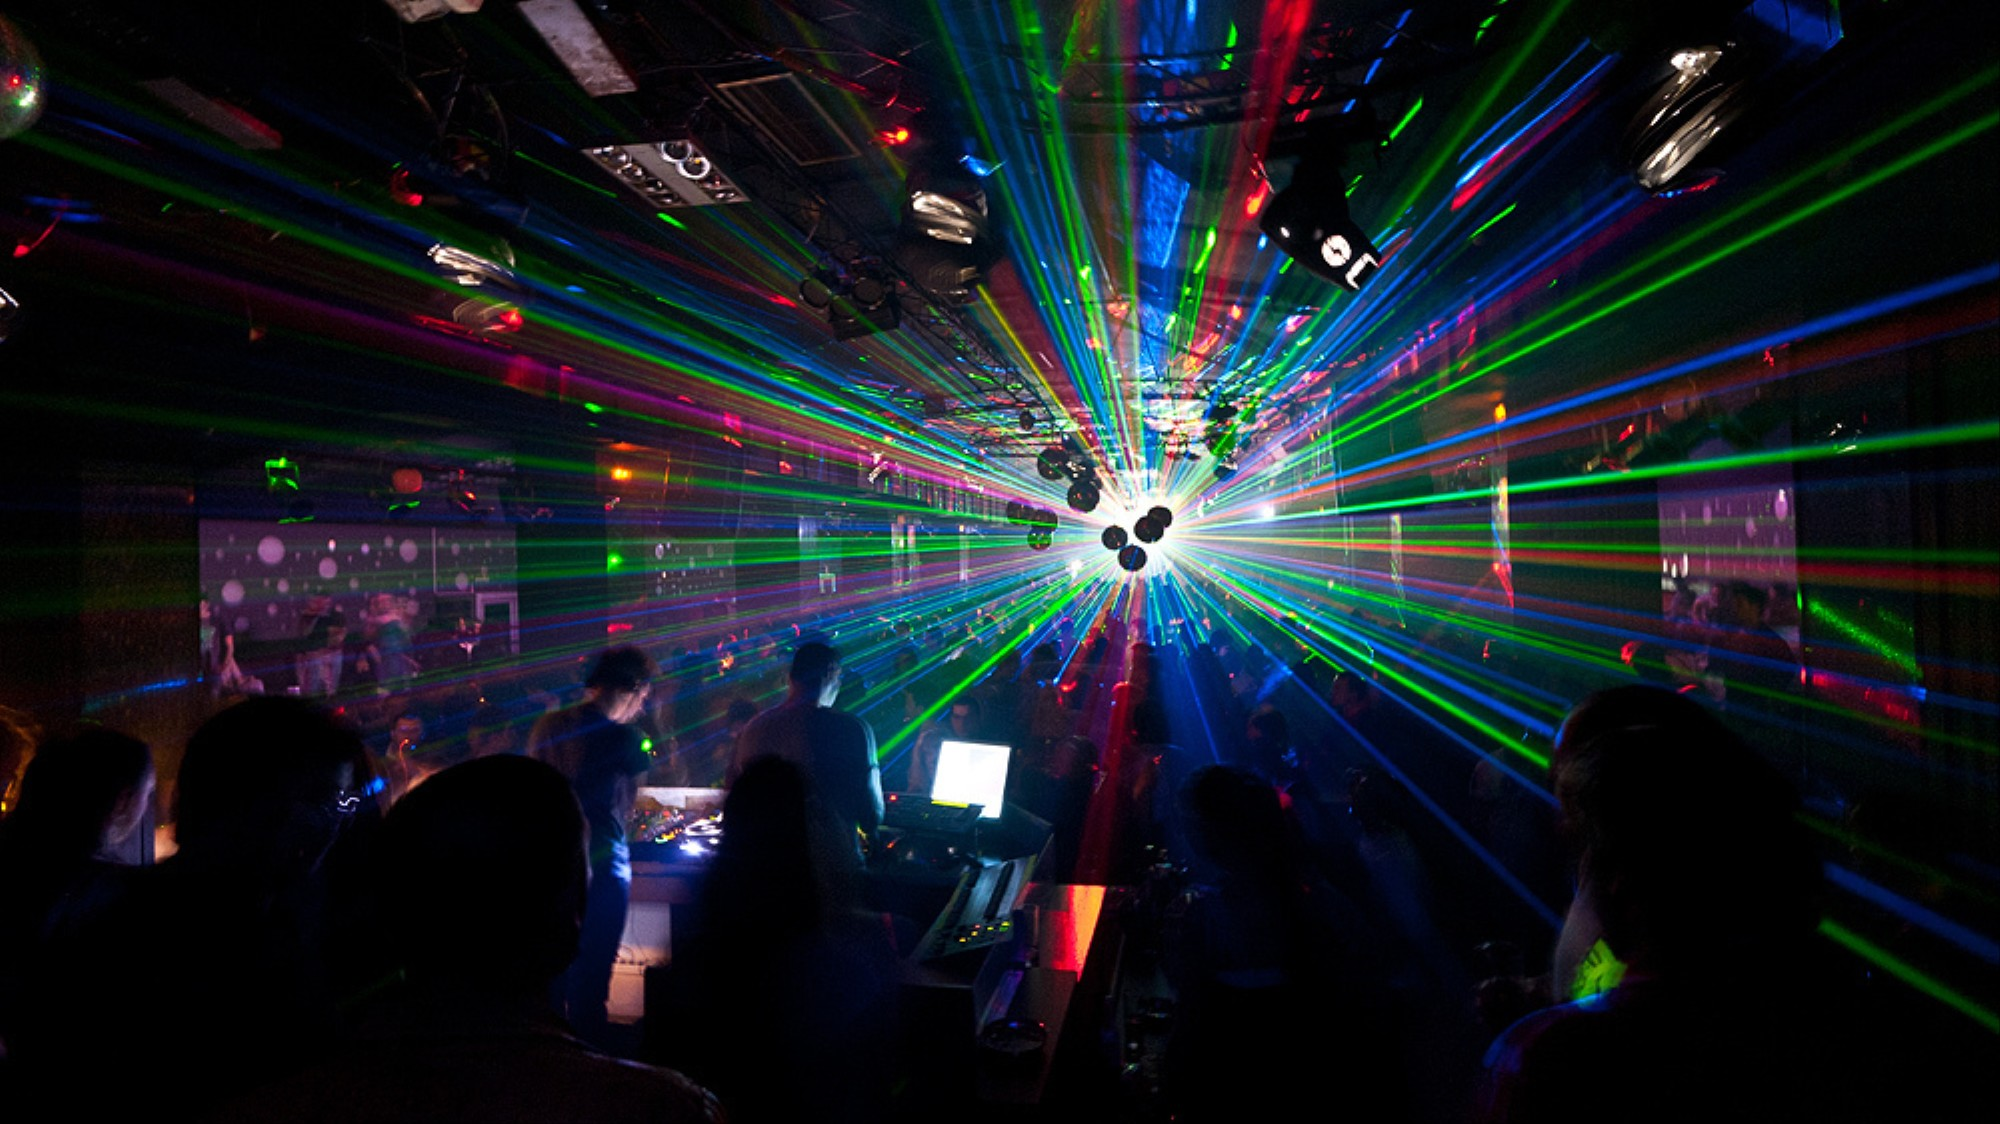 A History of the Laser in Dance Music - VICE